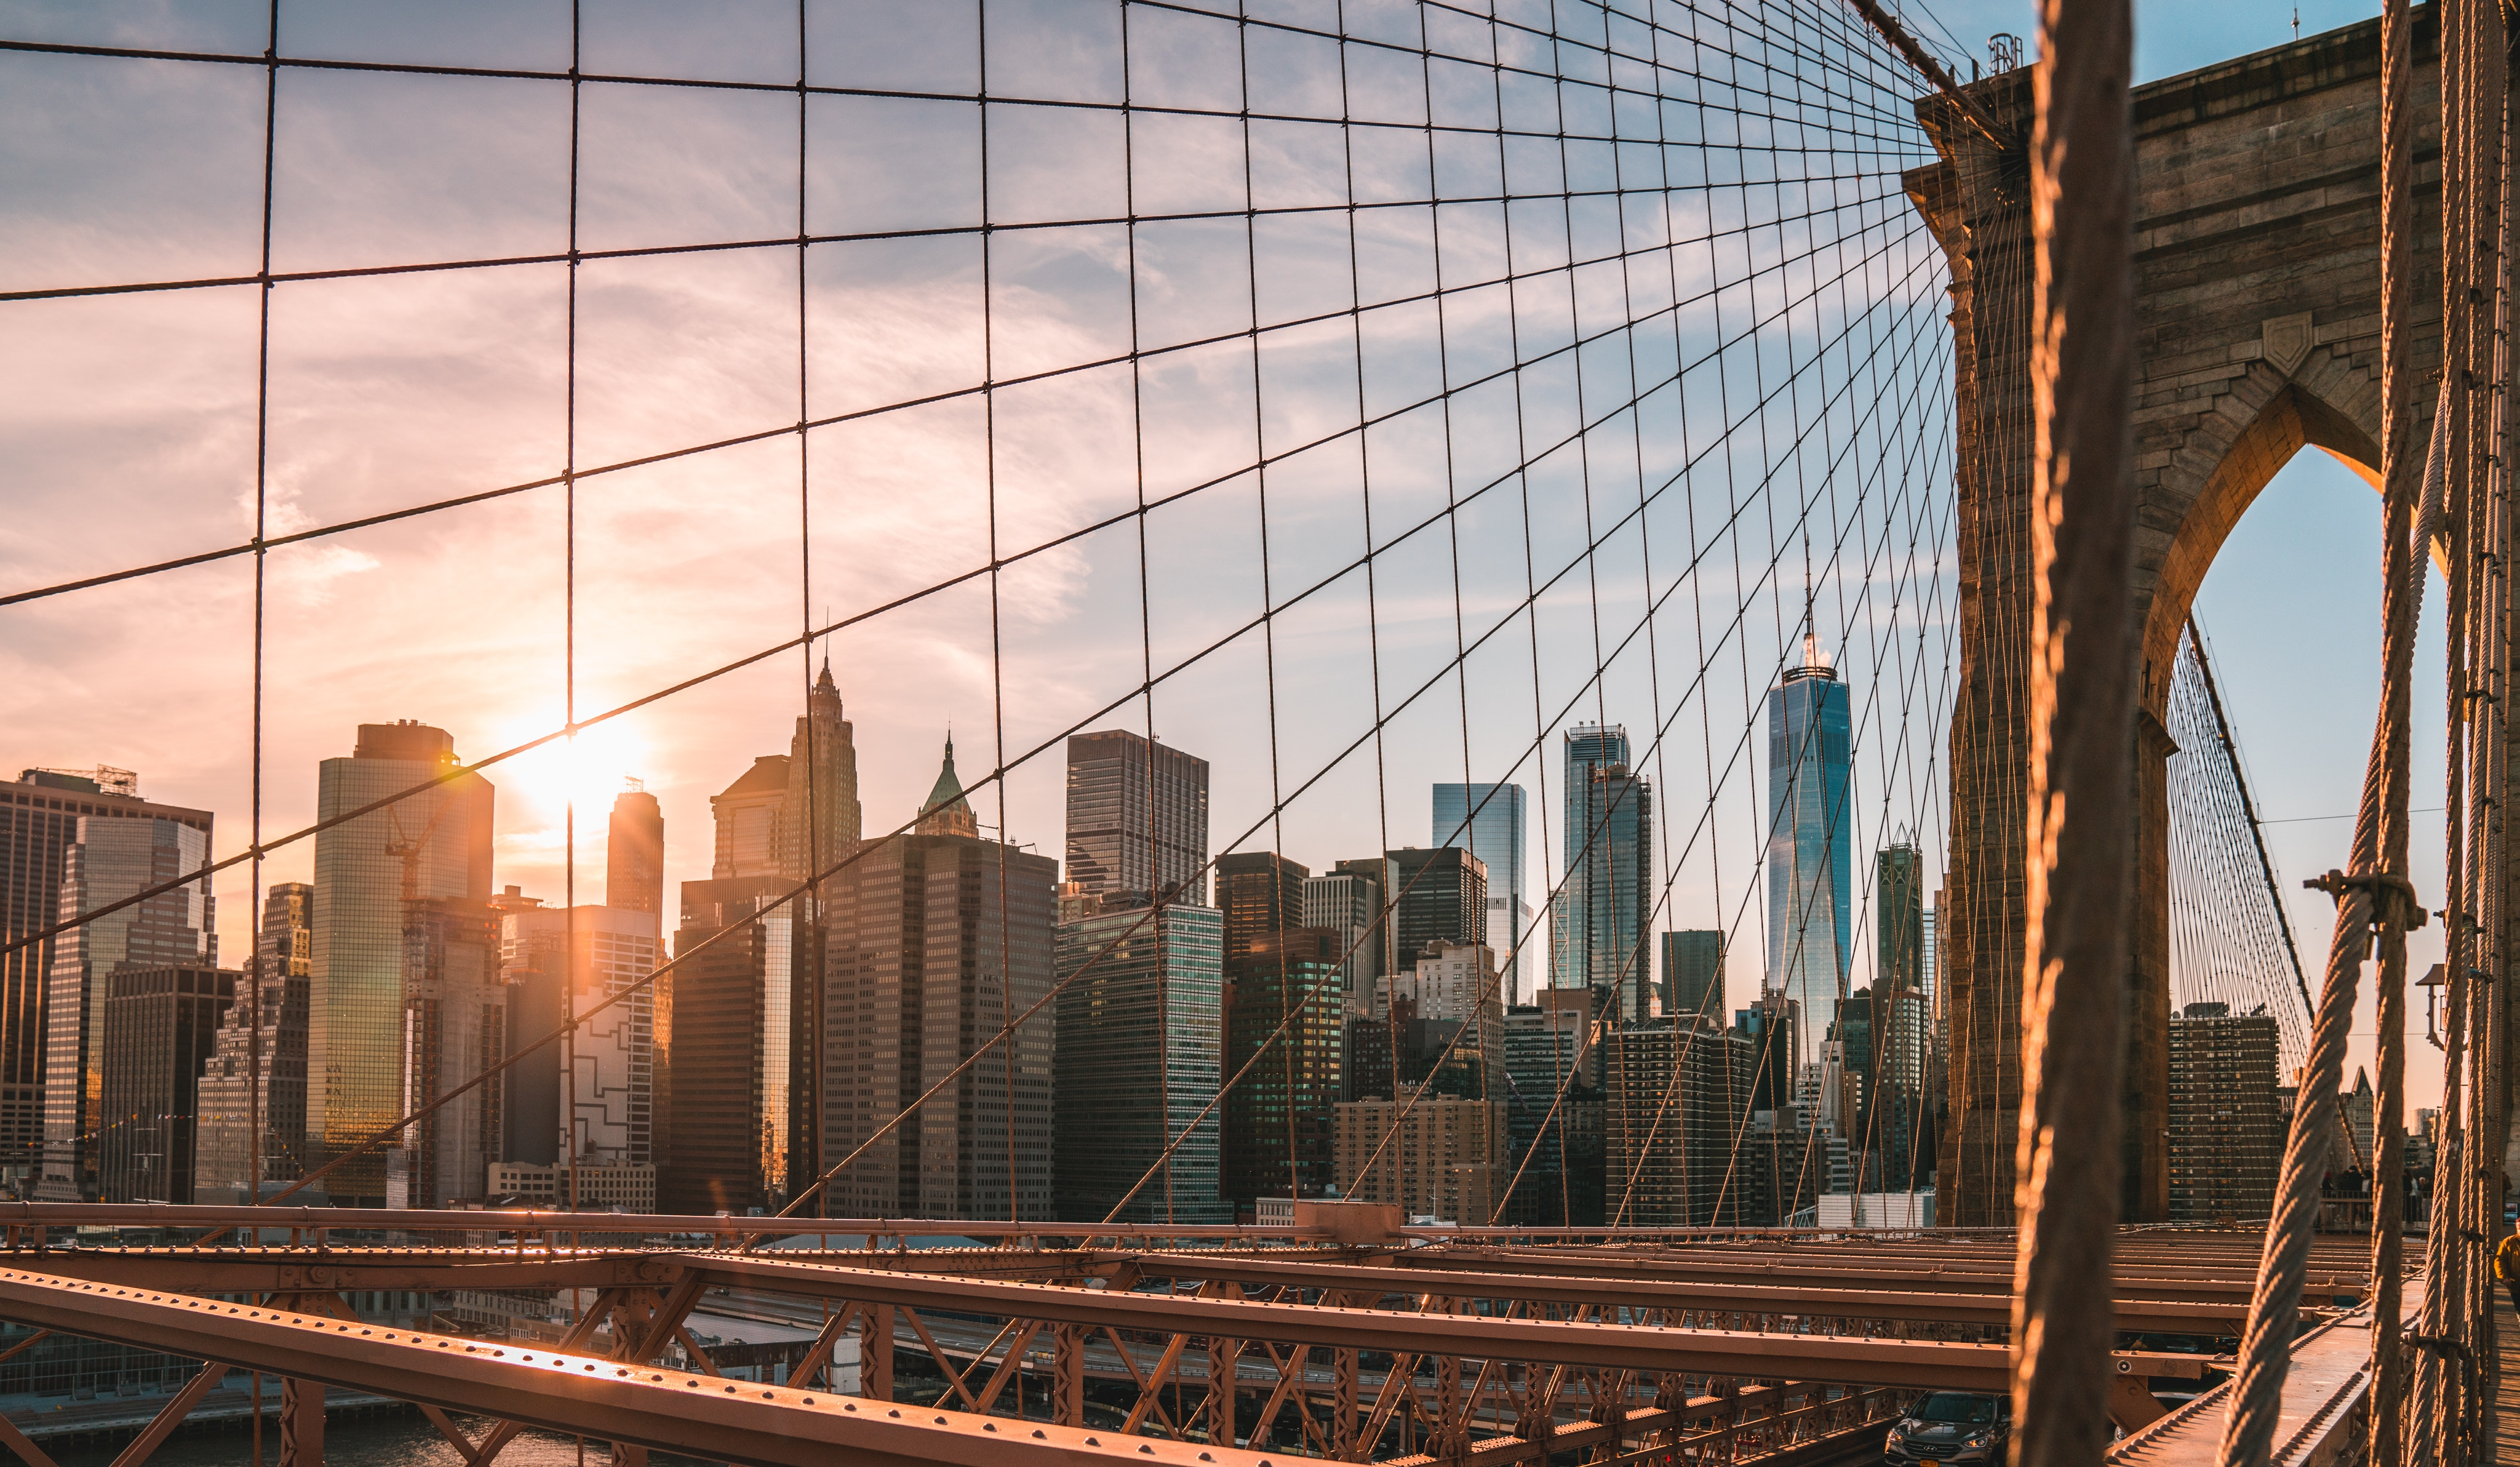 Did you know the PhotoPlus Expo is one of the largest photography expos in the world and is held in New York City?